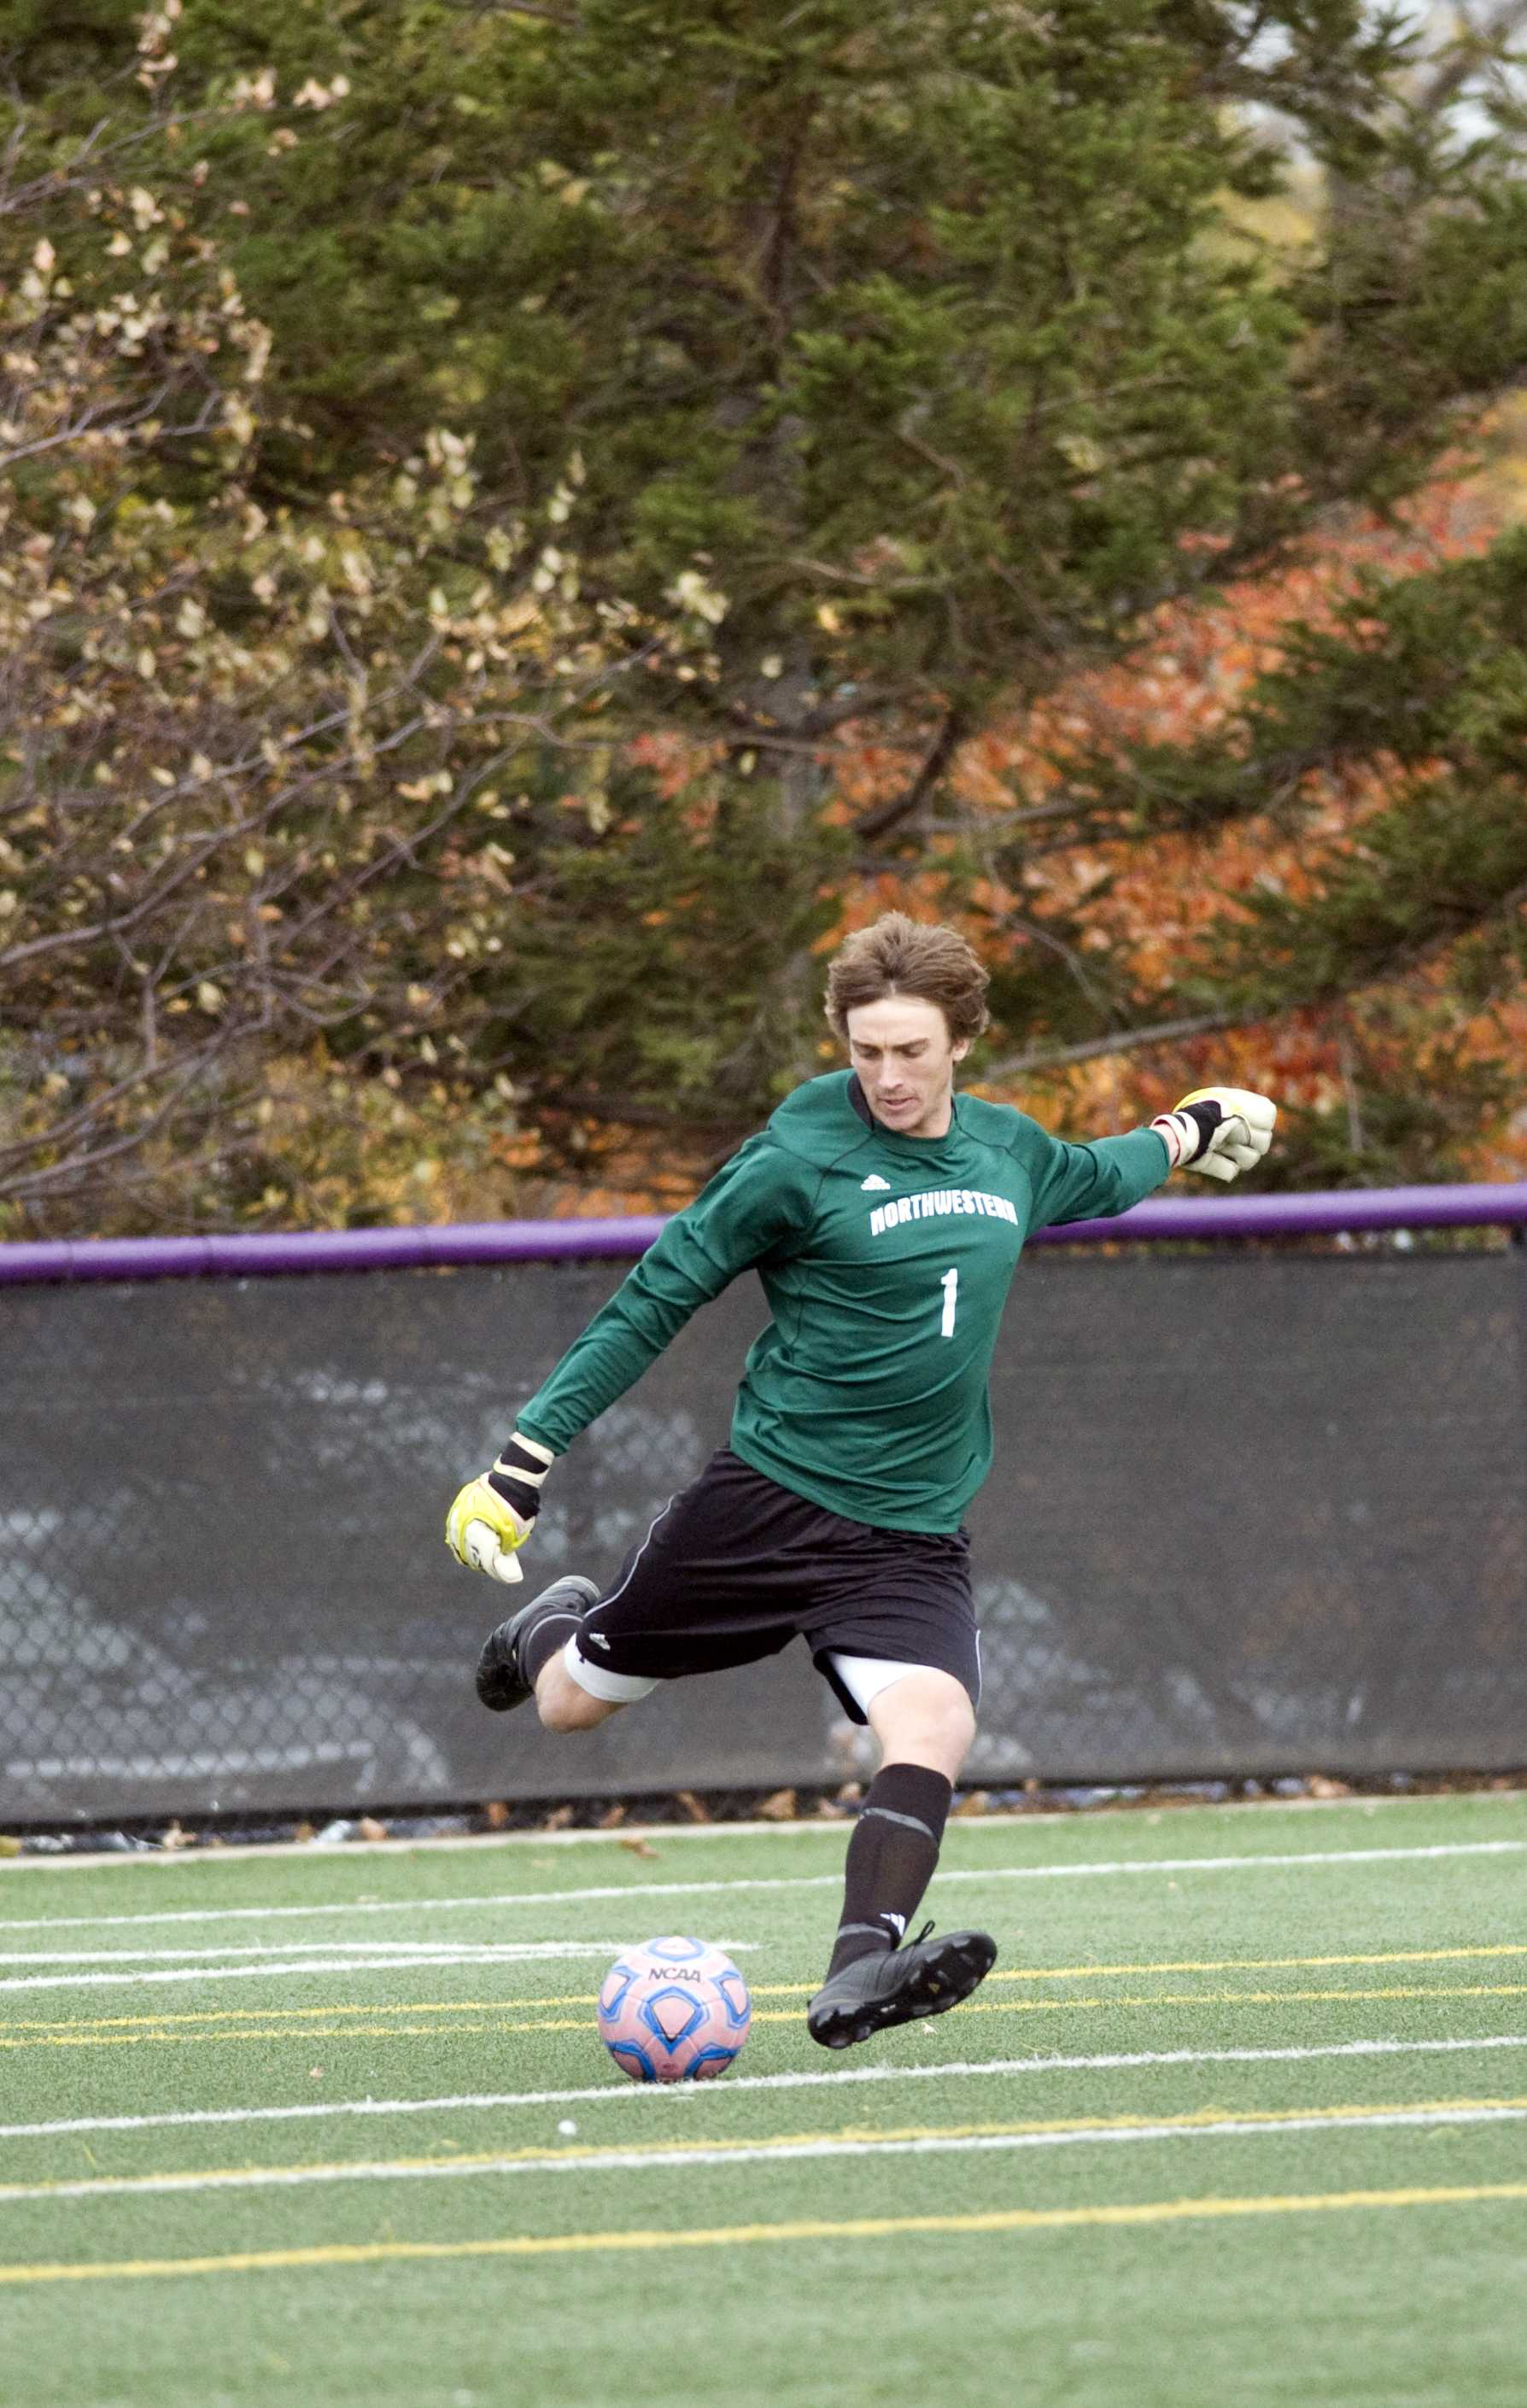 GETTING DEFENSIVE Goalie Tyler Miller and the stingy NU defense have been a big reason behind the Cats' unblemished record. The team has held their opponents scoreless five times so far this season.